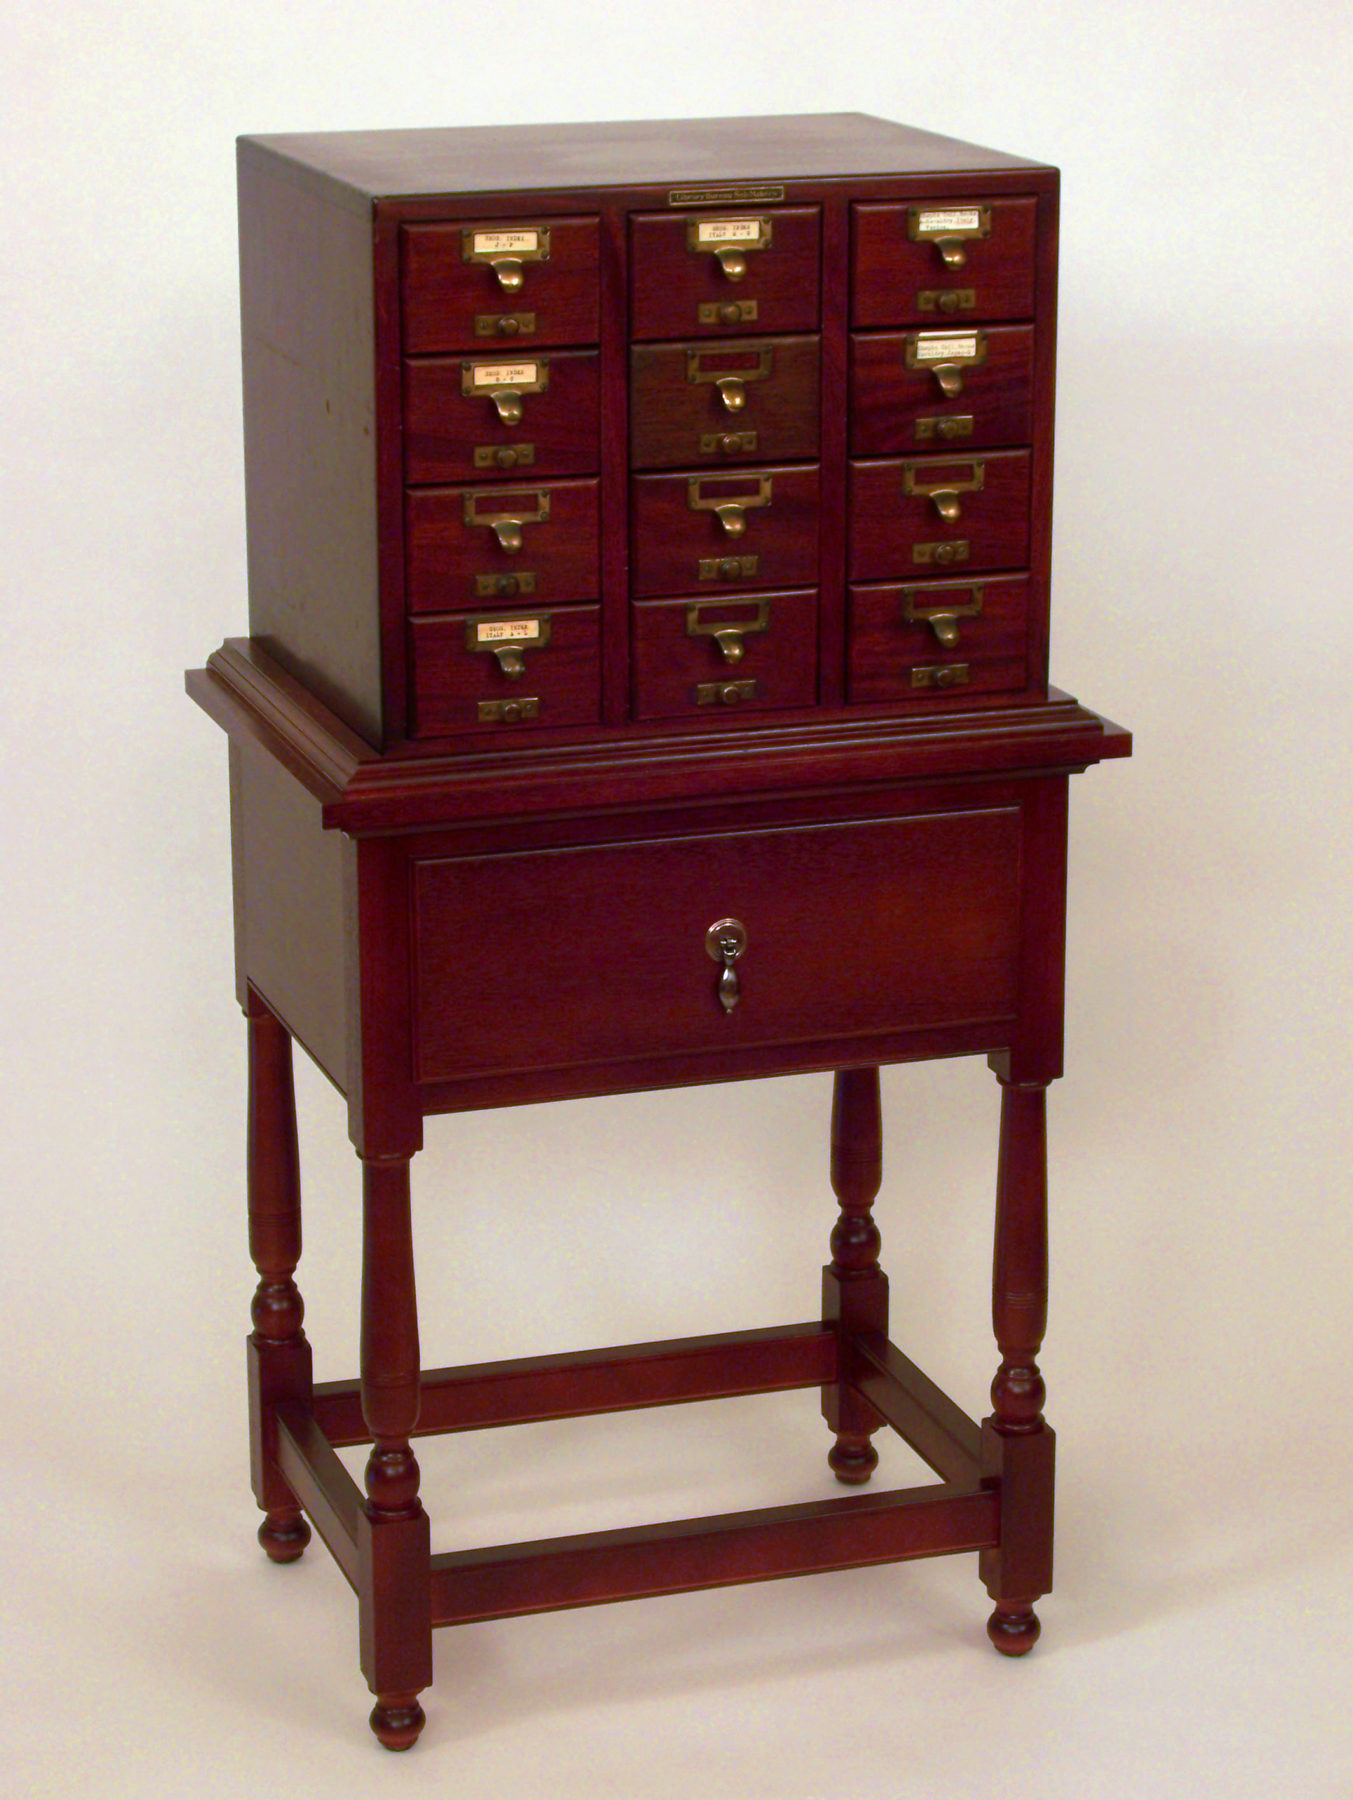 Library Card File on Stand - Mahogany